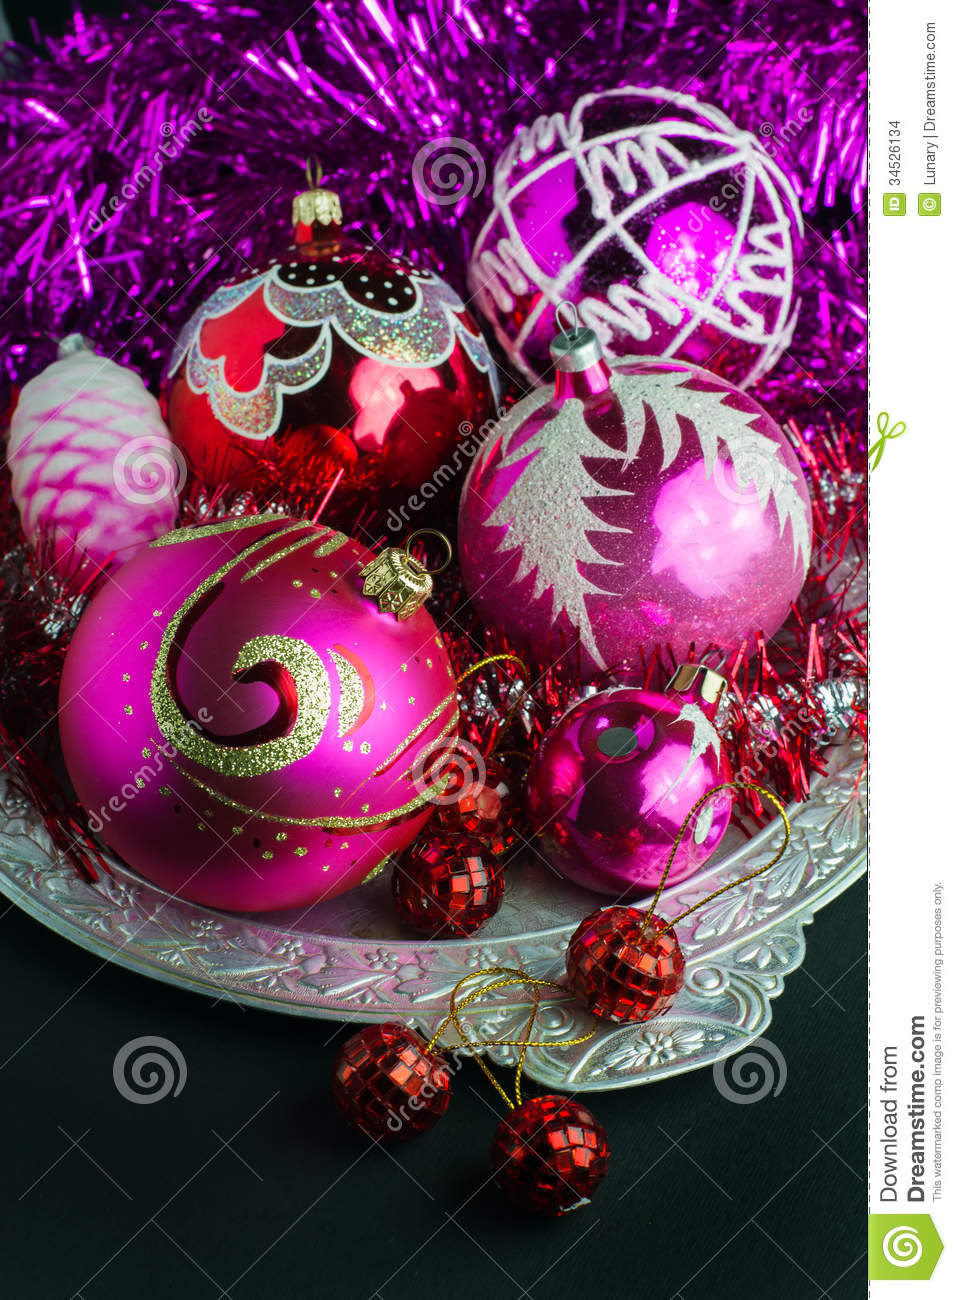 Pink and black christmas tree decorations - Red And Pink Christmas Decorations